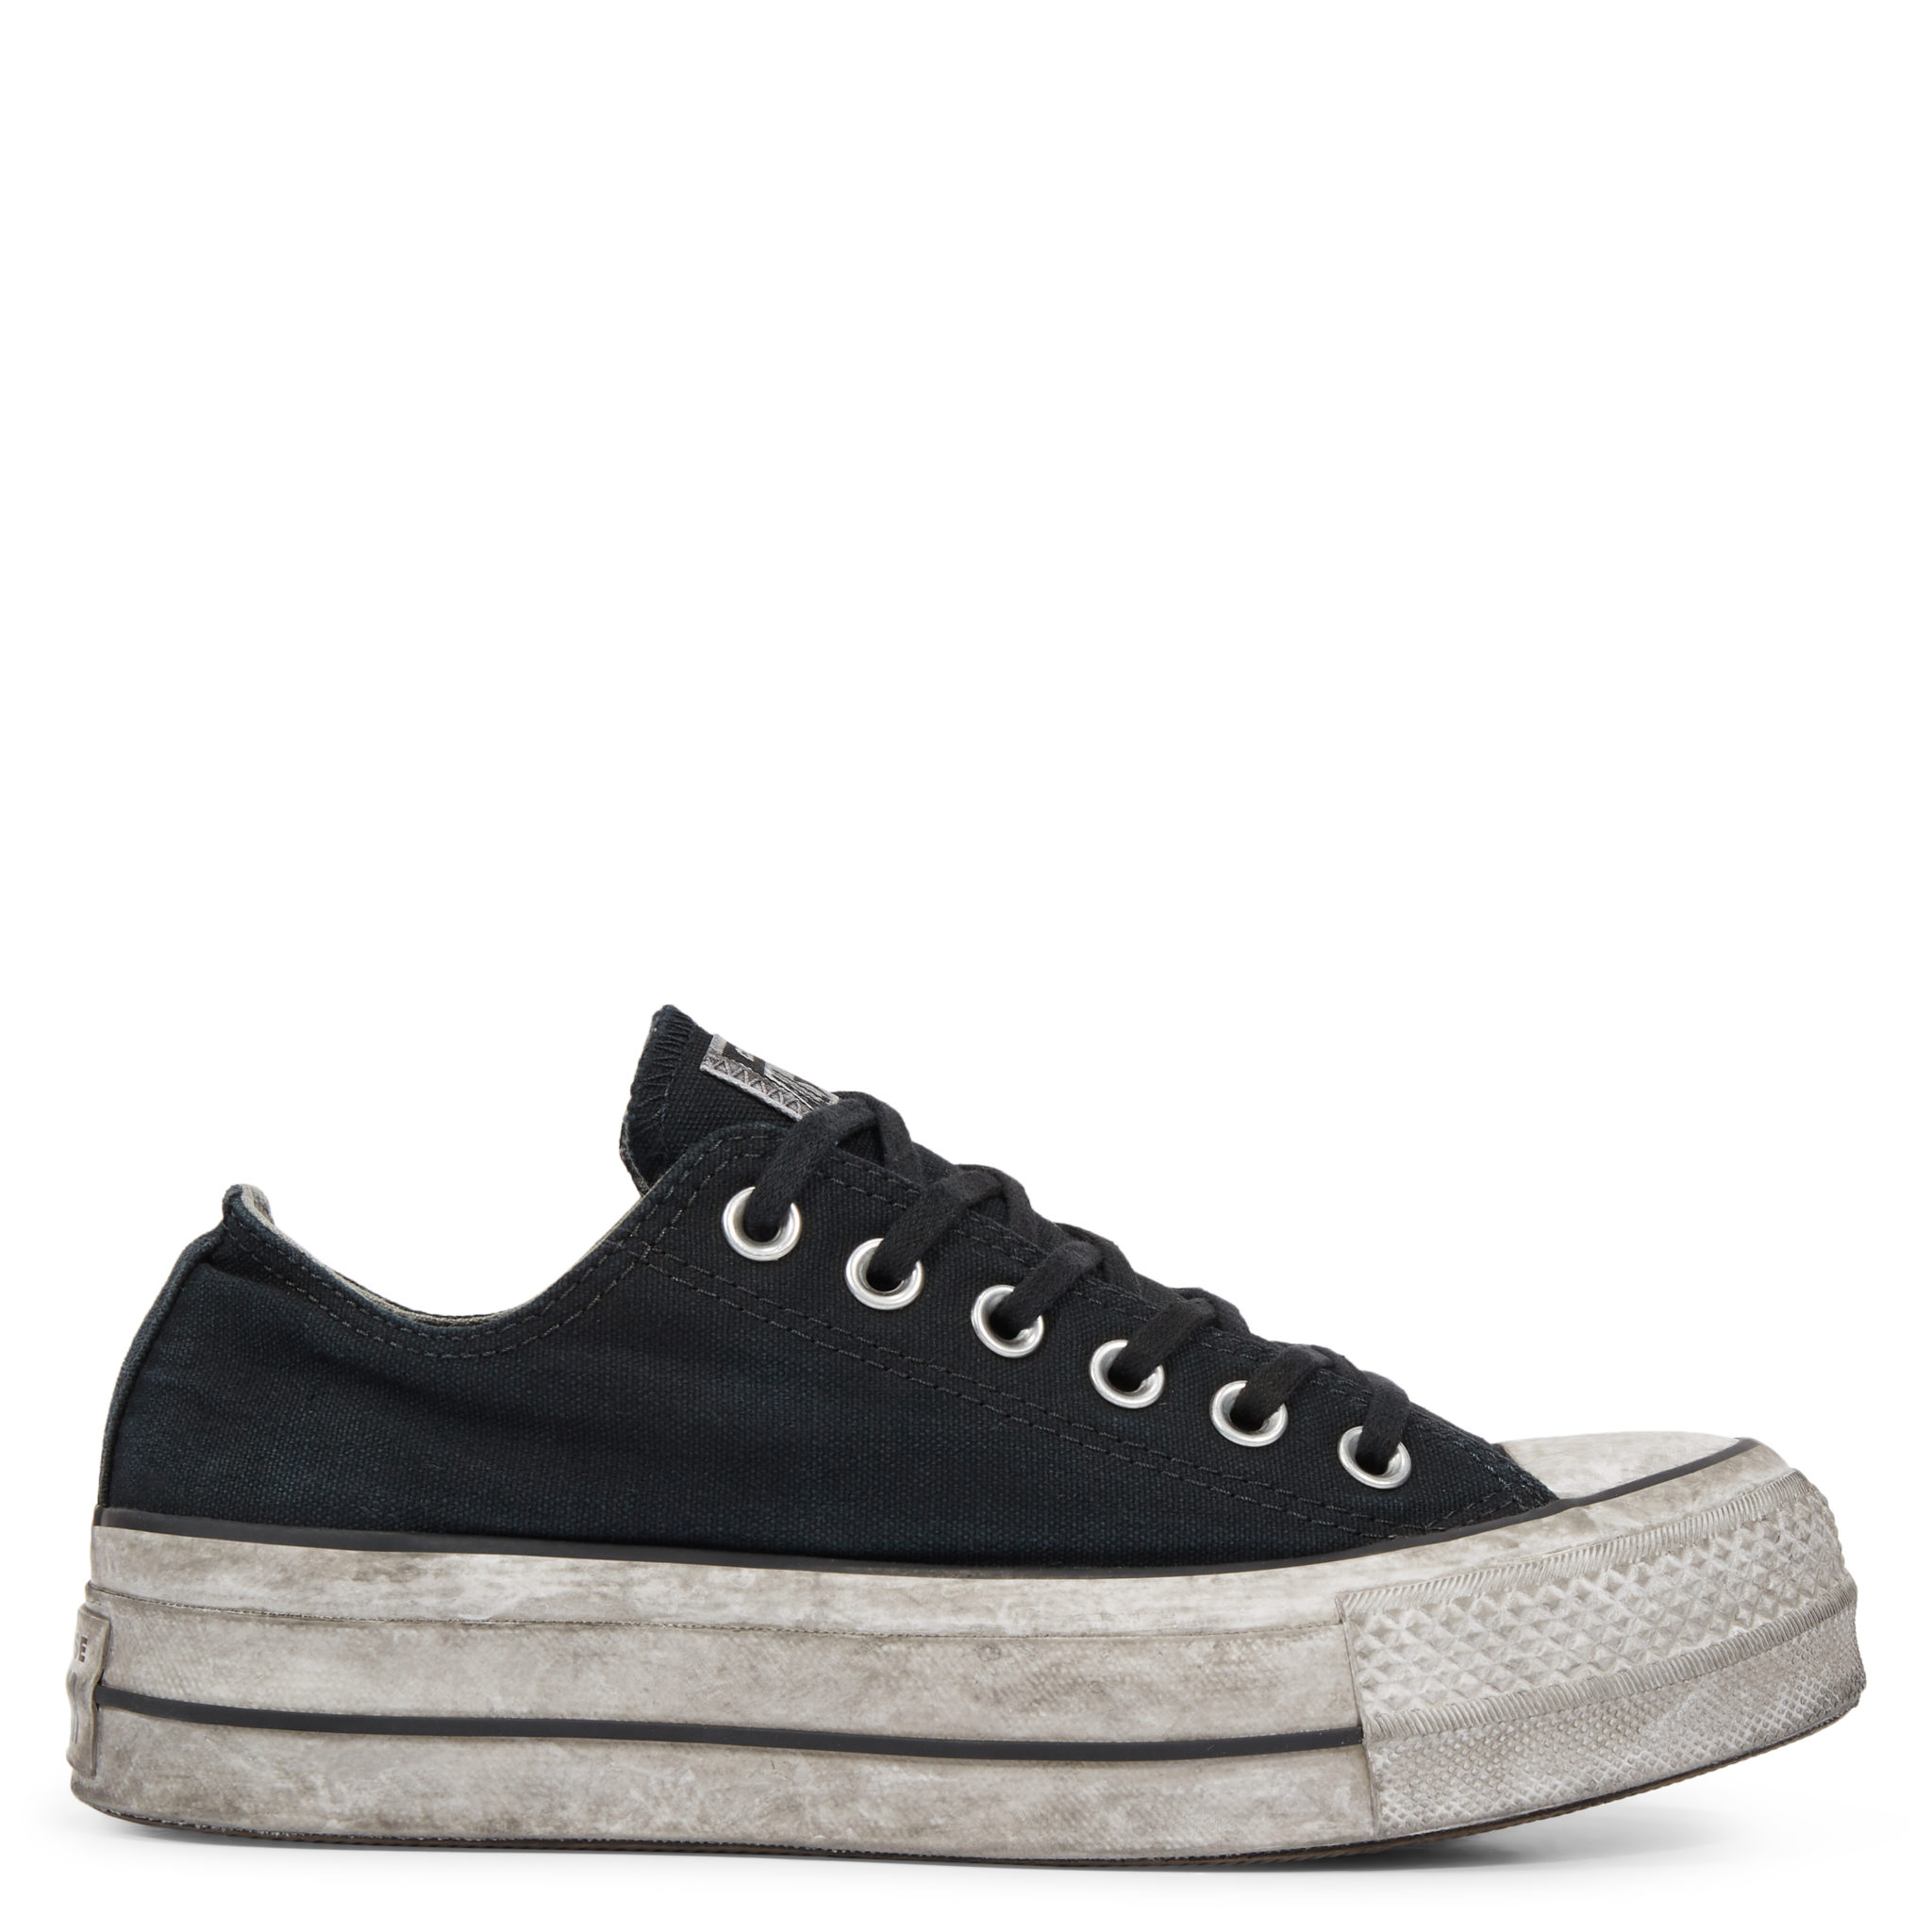 Converse Chuck Taylor All Star ox lift limited edition black